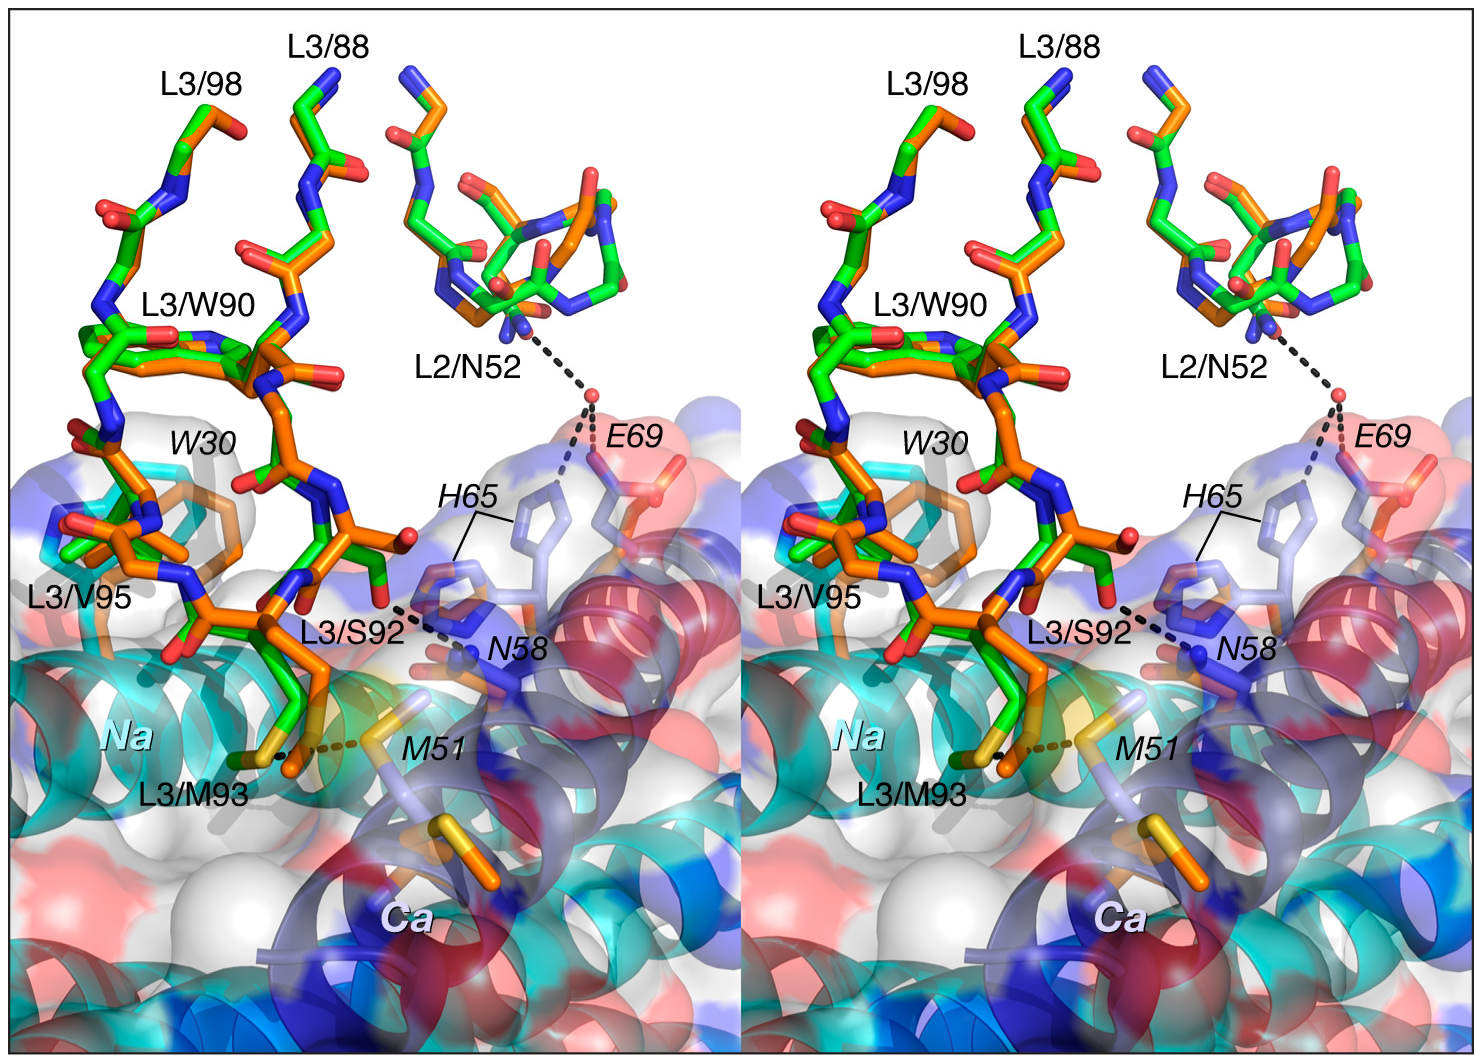 Comparison of the interactions of CDR-L2 of Fab 8066 and Fab 8062 with 5-Helix.